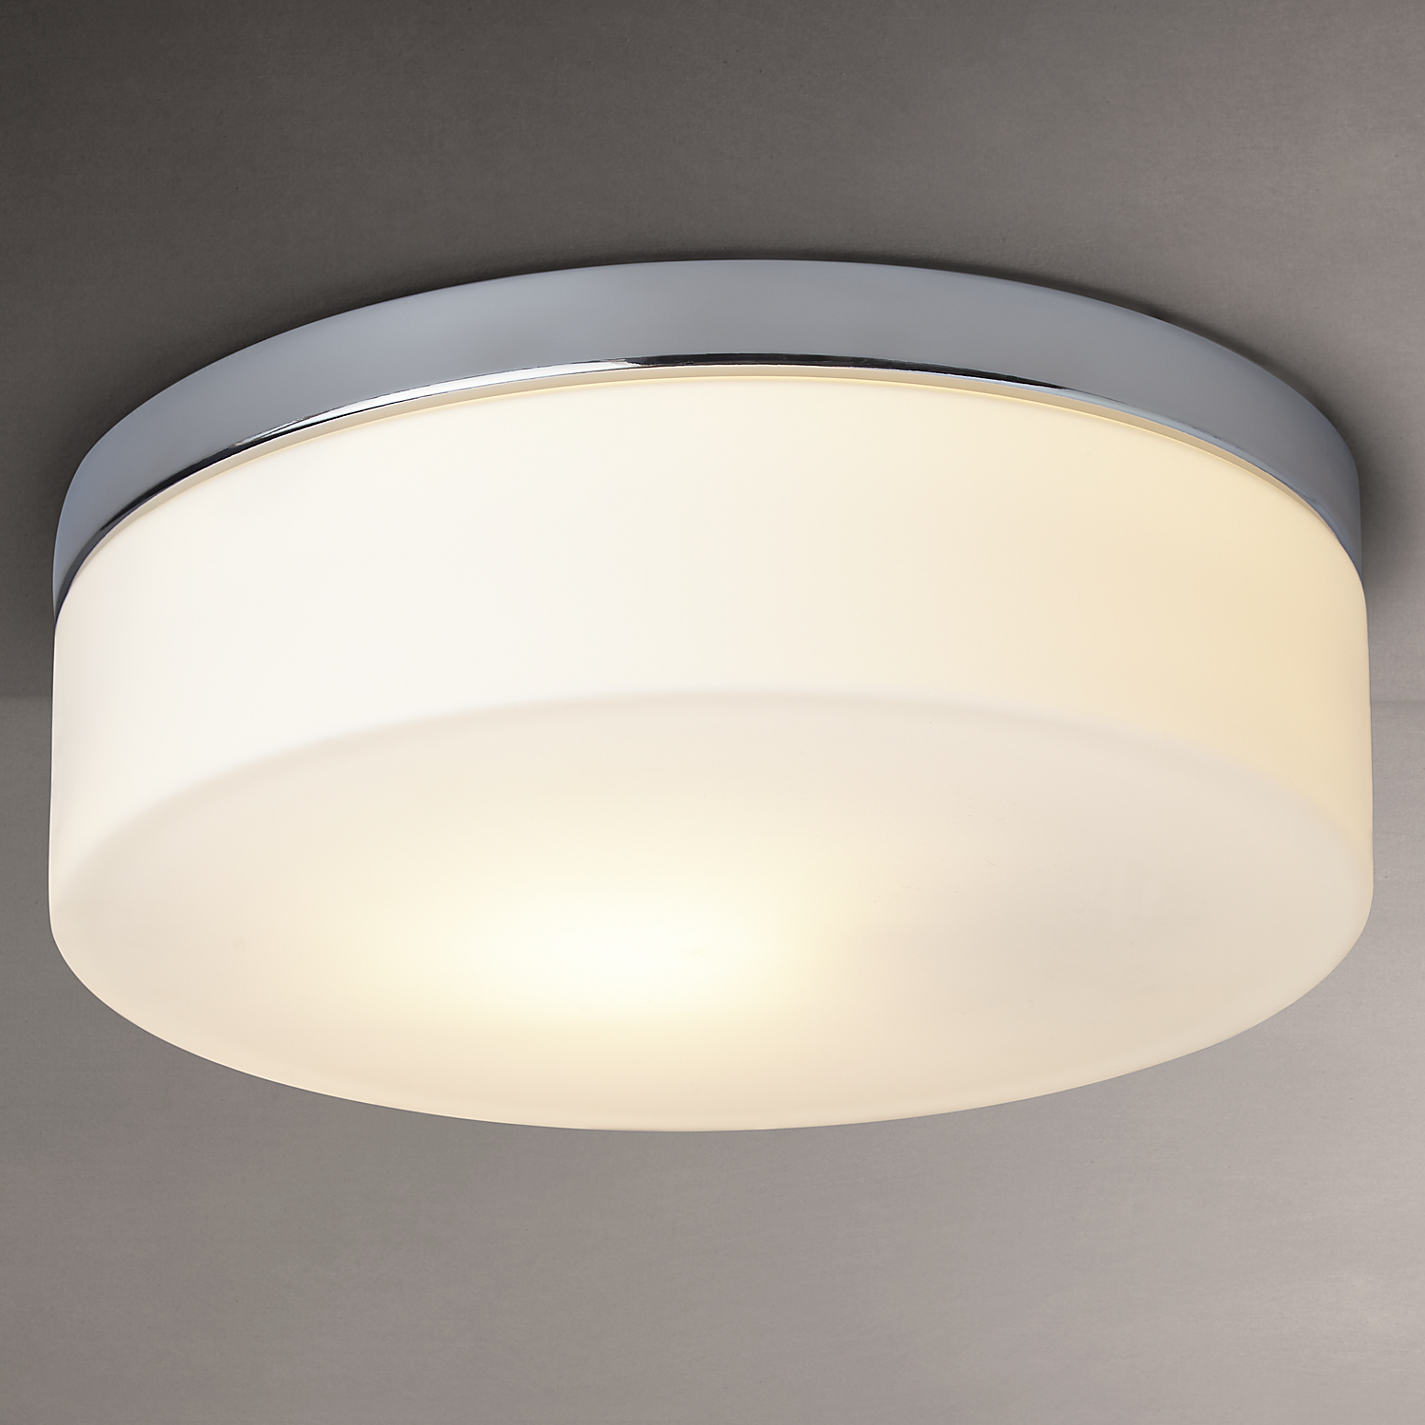 Buy astro sabina round flush bathroom ceiling light john lewis buy astro sabina round flush bathroom ceiling light online at johnlewis mozeypictures Images